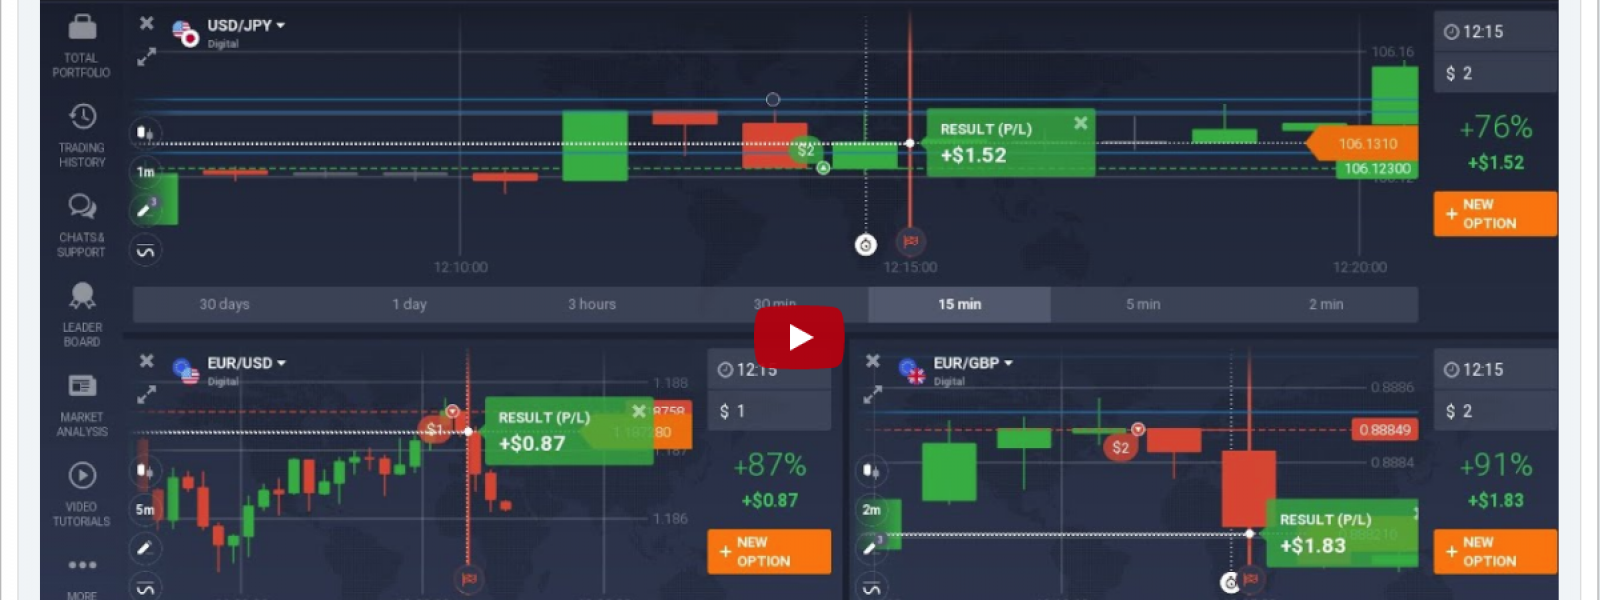 $ 7626 for 8 minutes | Binary options trading strategy